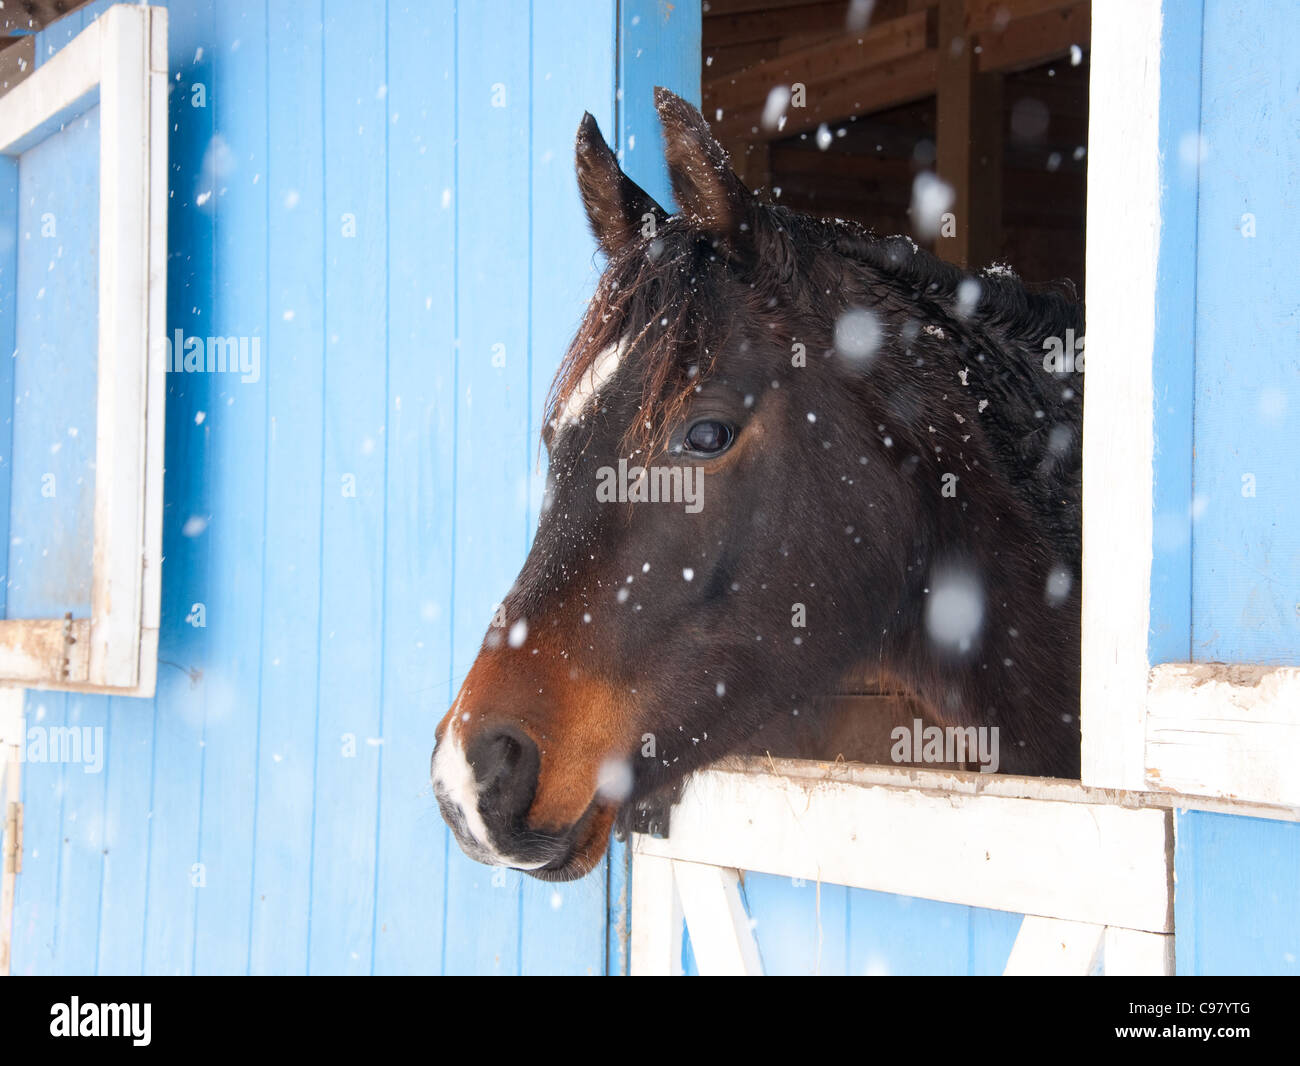 Dark bay Arabian horse looking out of a blue barn in heavy snow fall - Stock Image